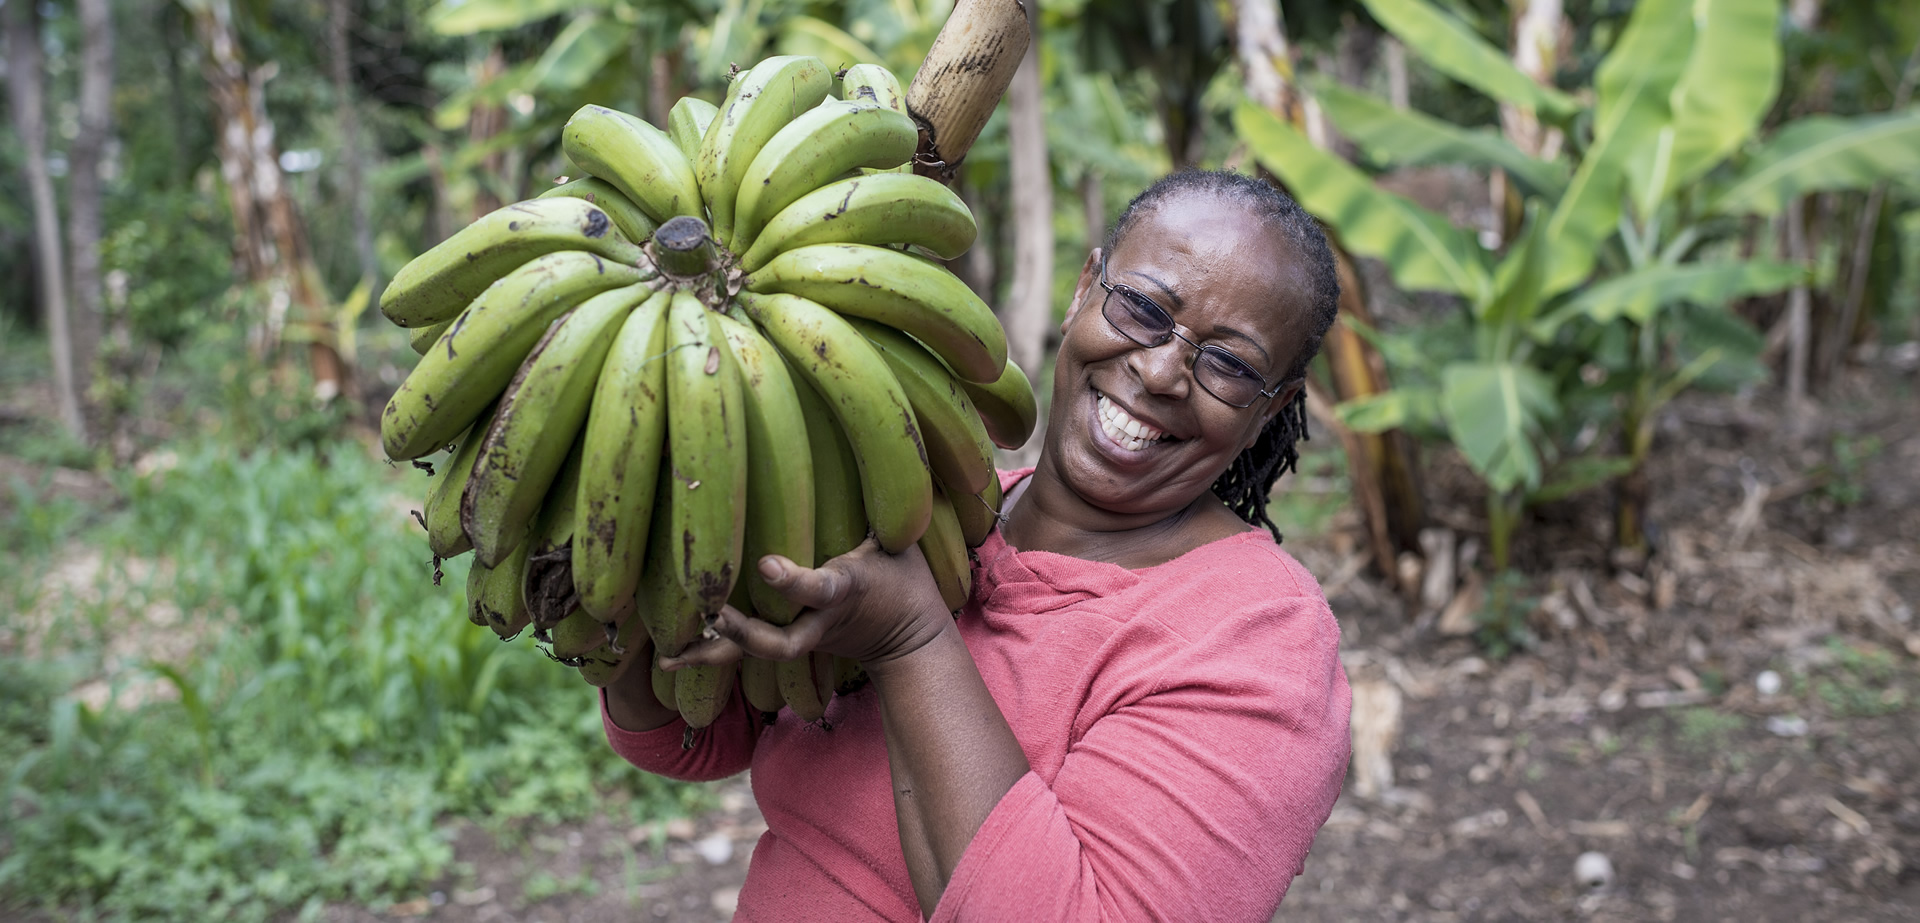 bumper banana harvest due to bioslurry application